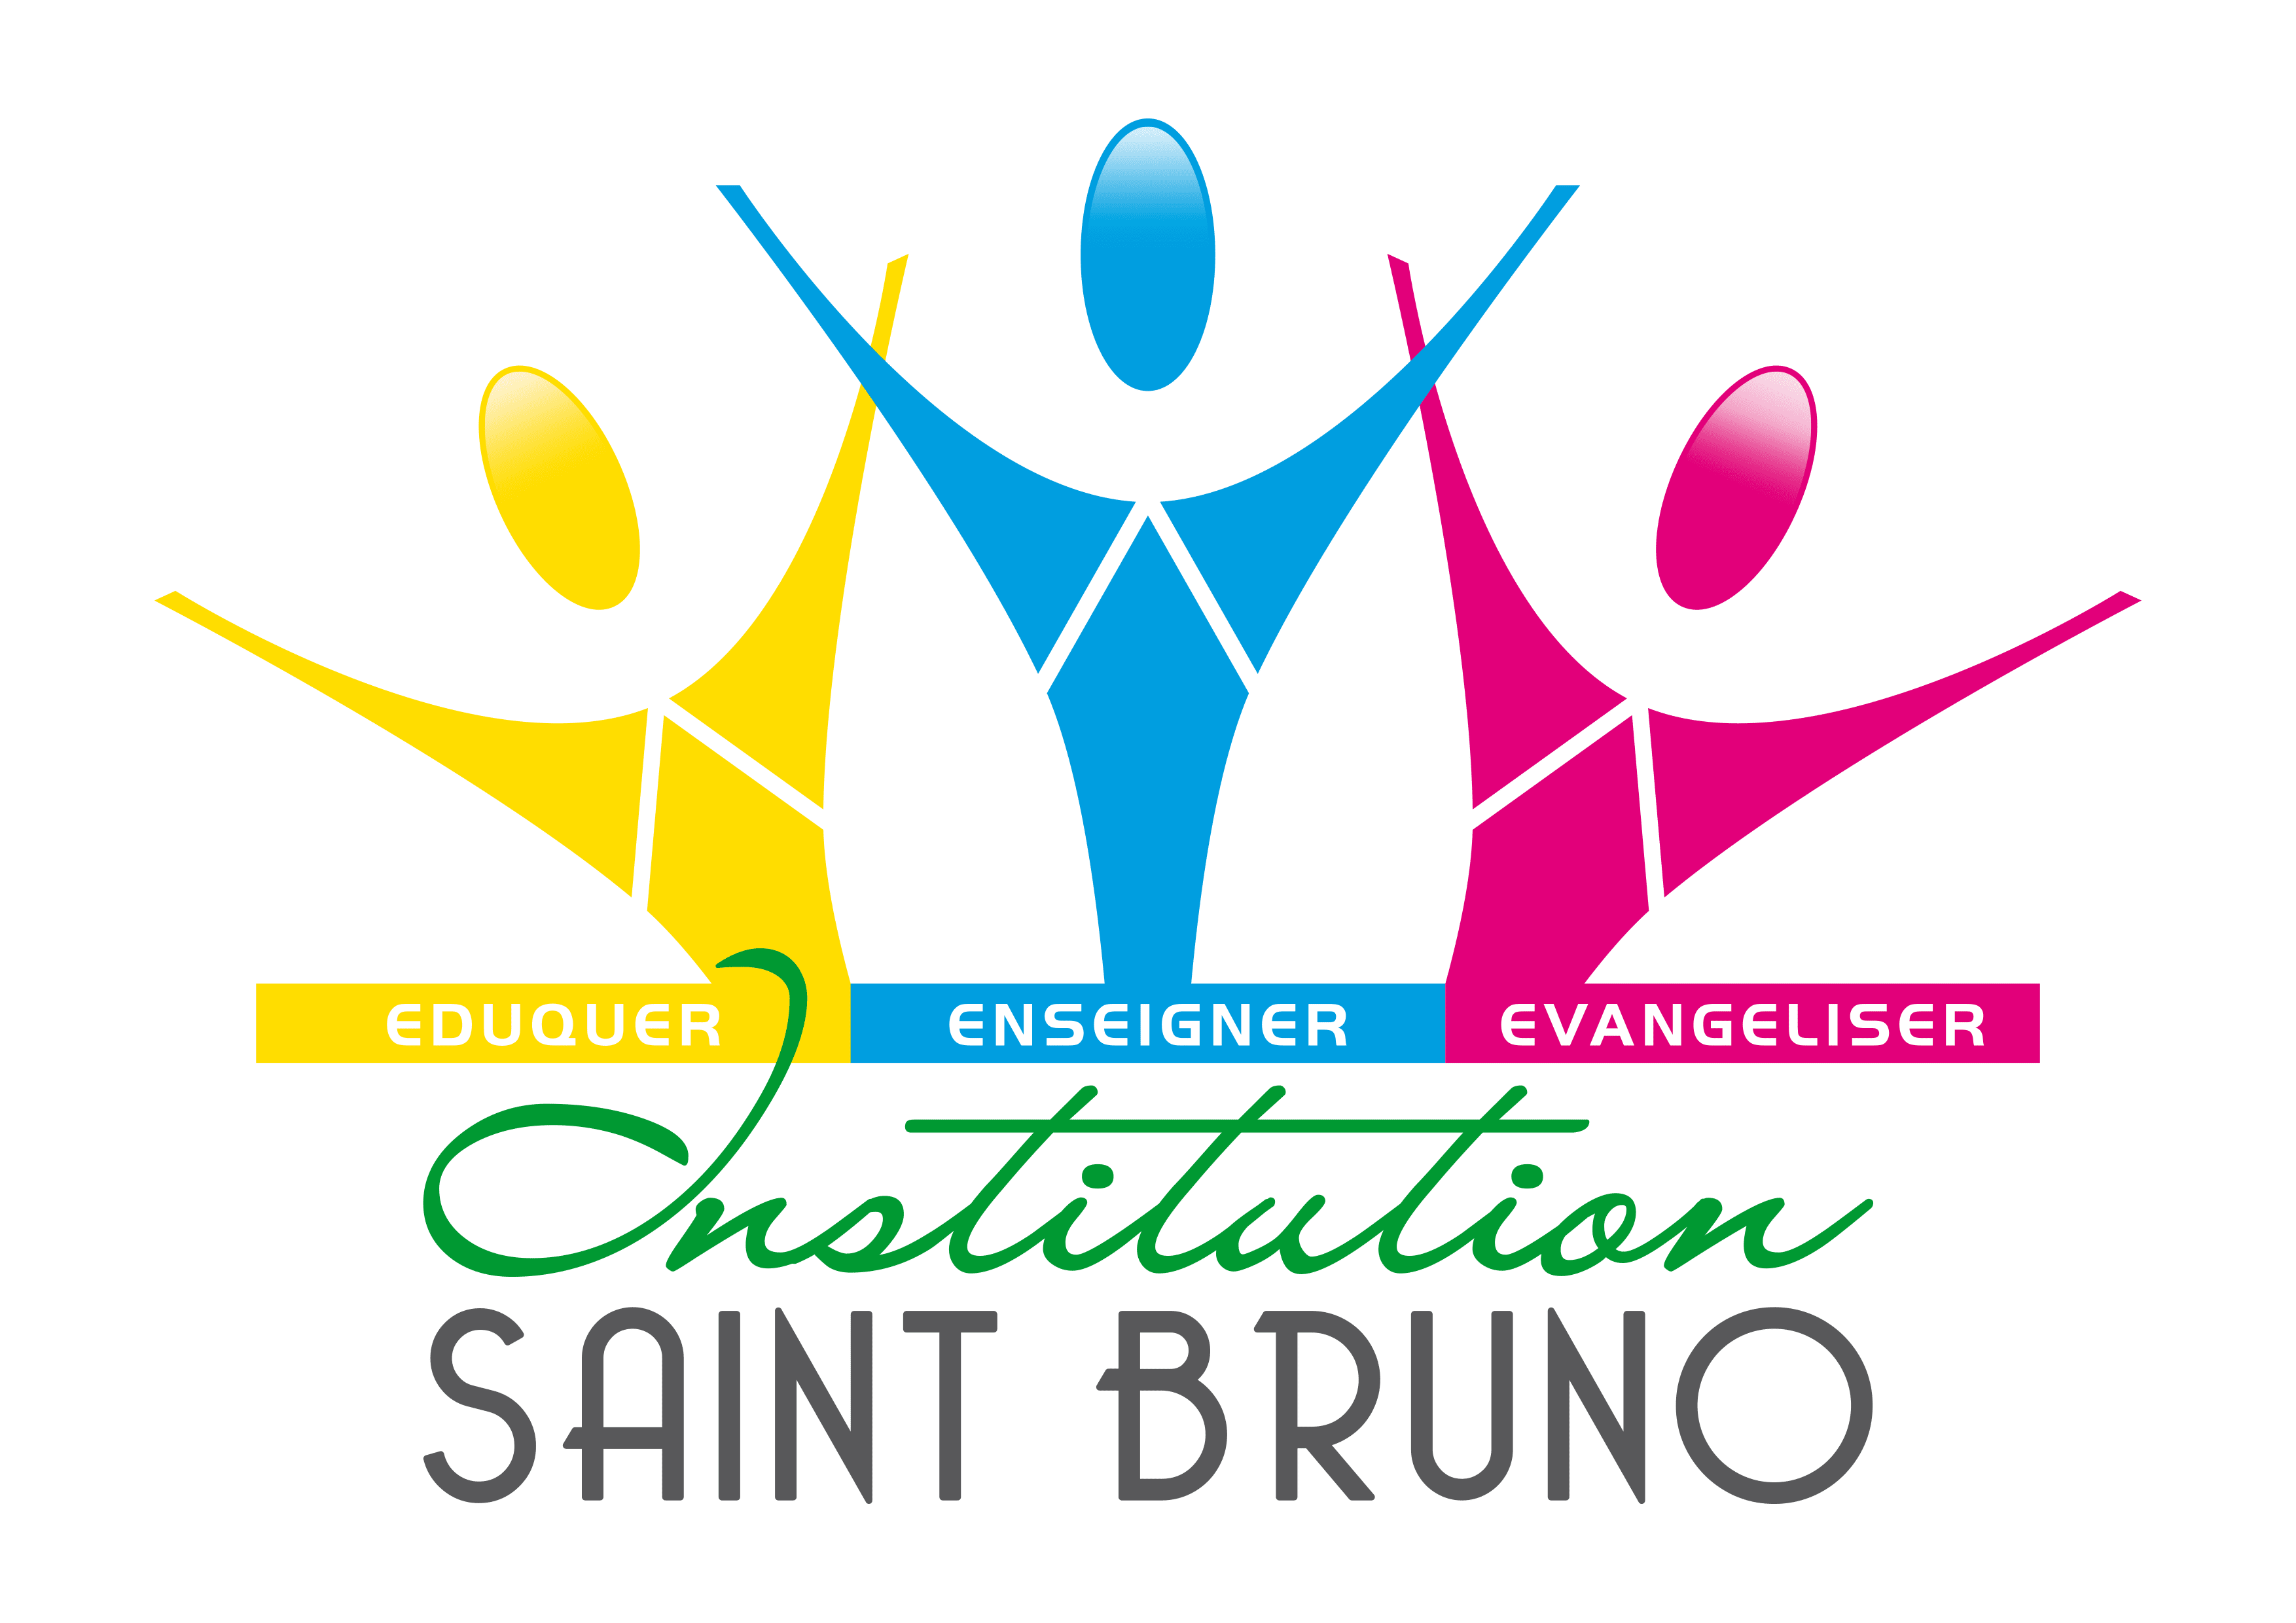 INSTITUTION_SAINT_BRUNO